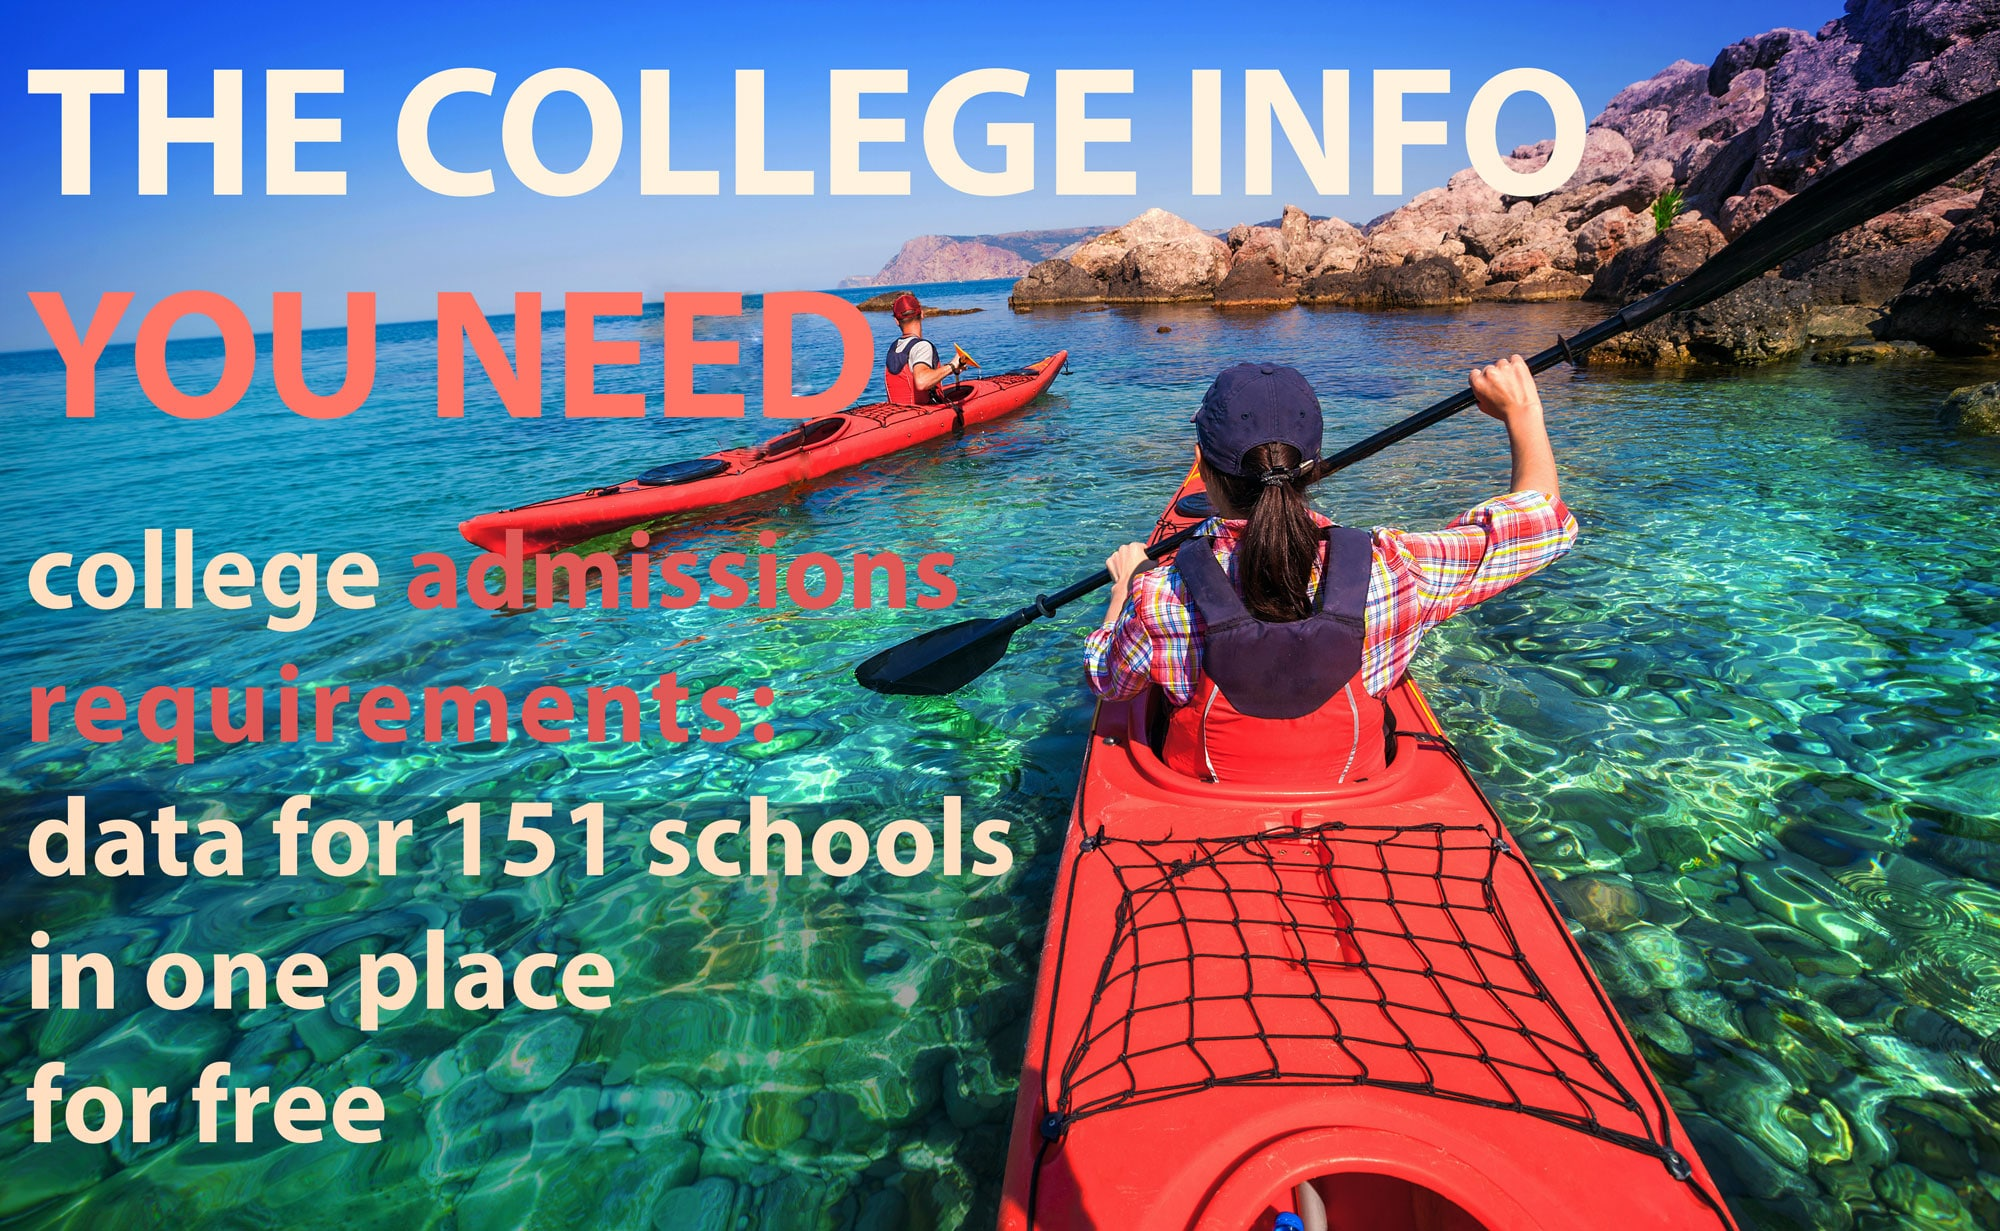 College Admissions Requirements Offer